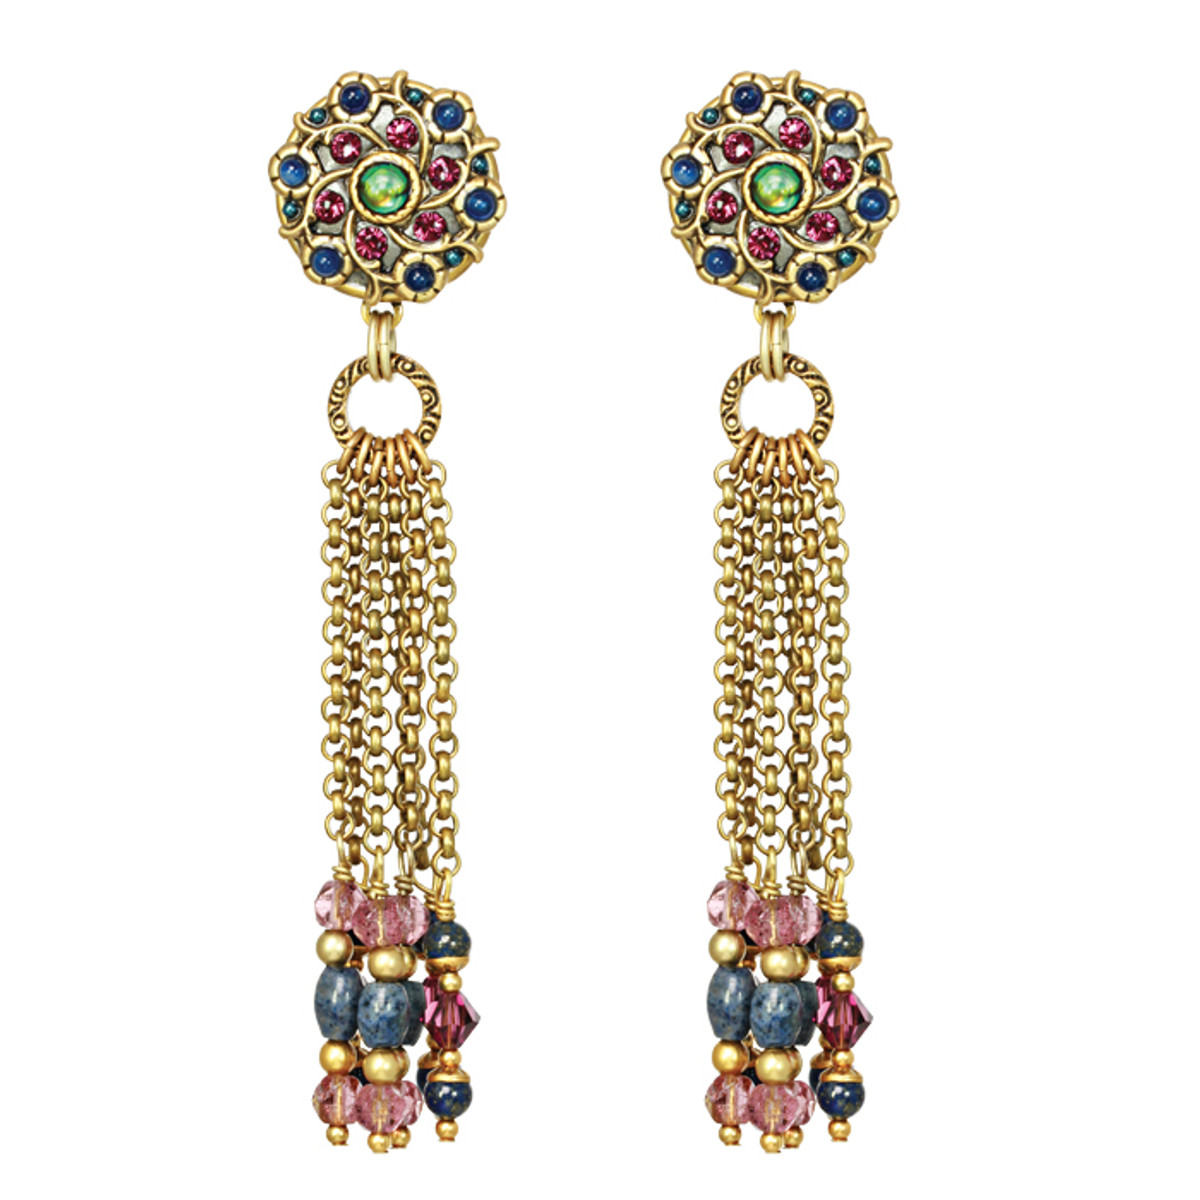 Michal Golan Clip on  Earrings - Florence Round With Tassels Click